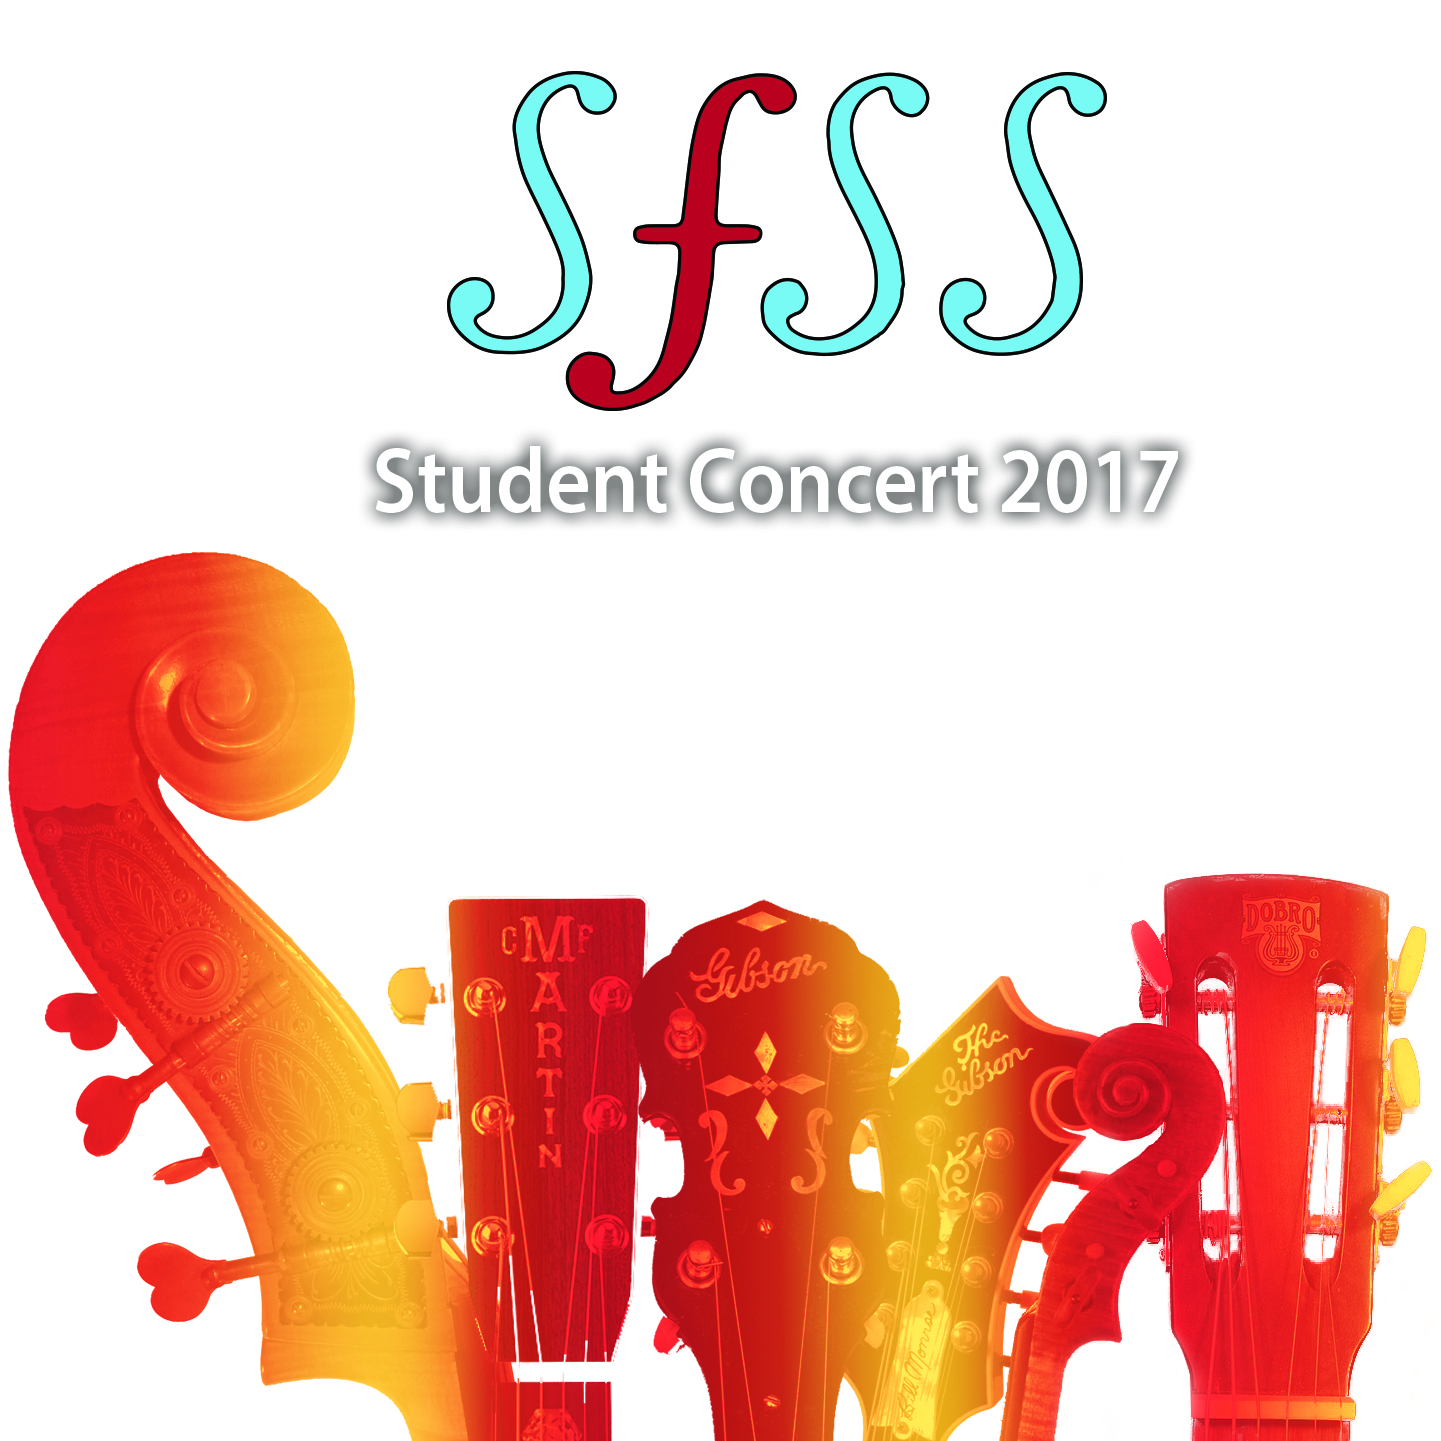 Artist:   Sore Fingers Summer Schools    Title:  Student Concert 2017   Credit:  Recording, Mastering   Year:  2017